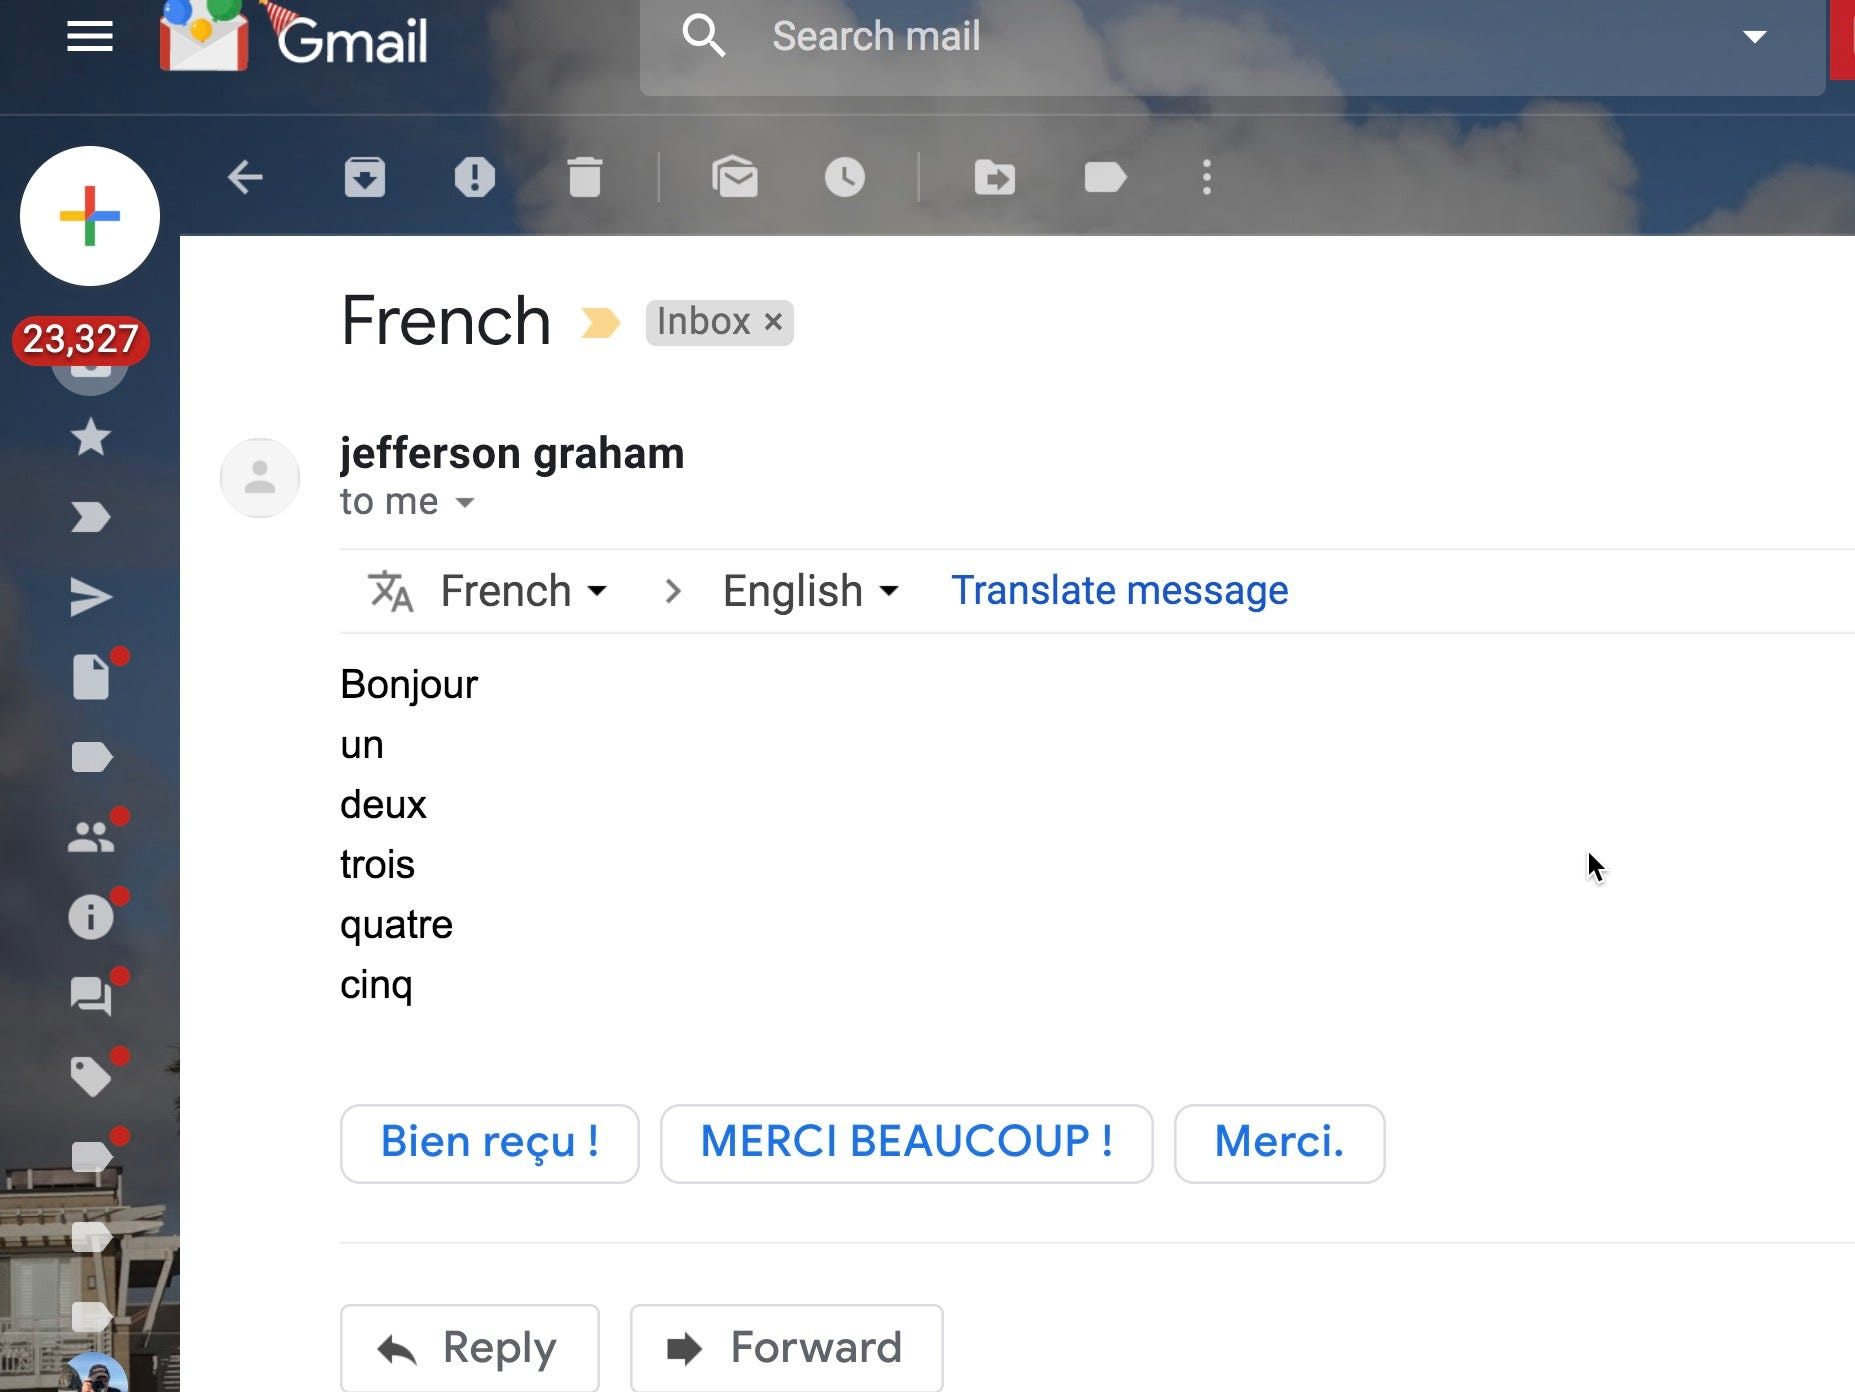 7 things you didn't know you could do with Gmail